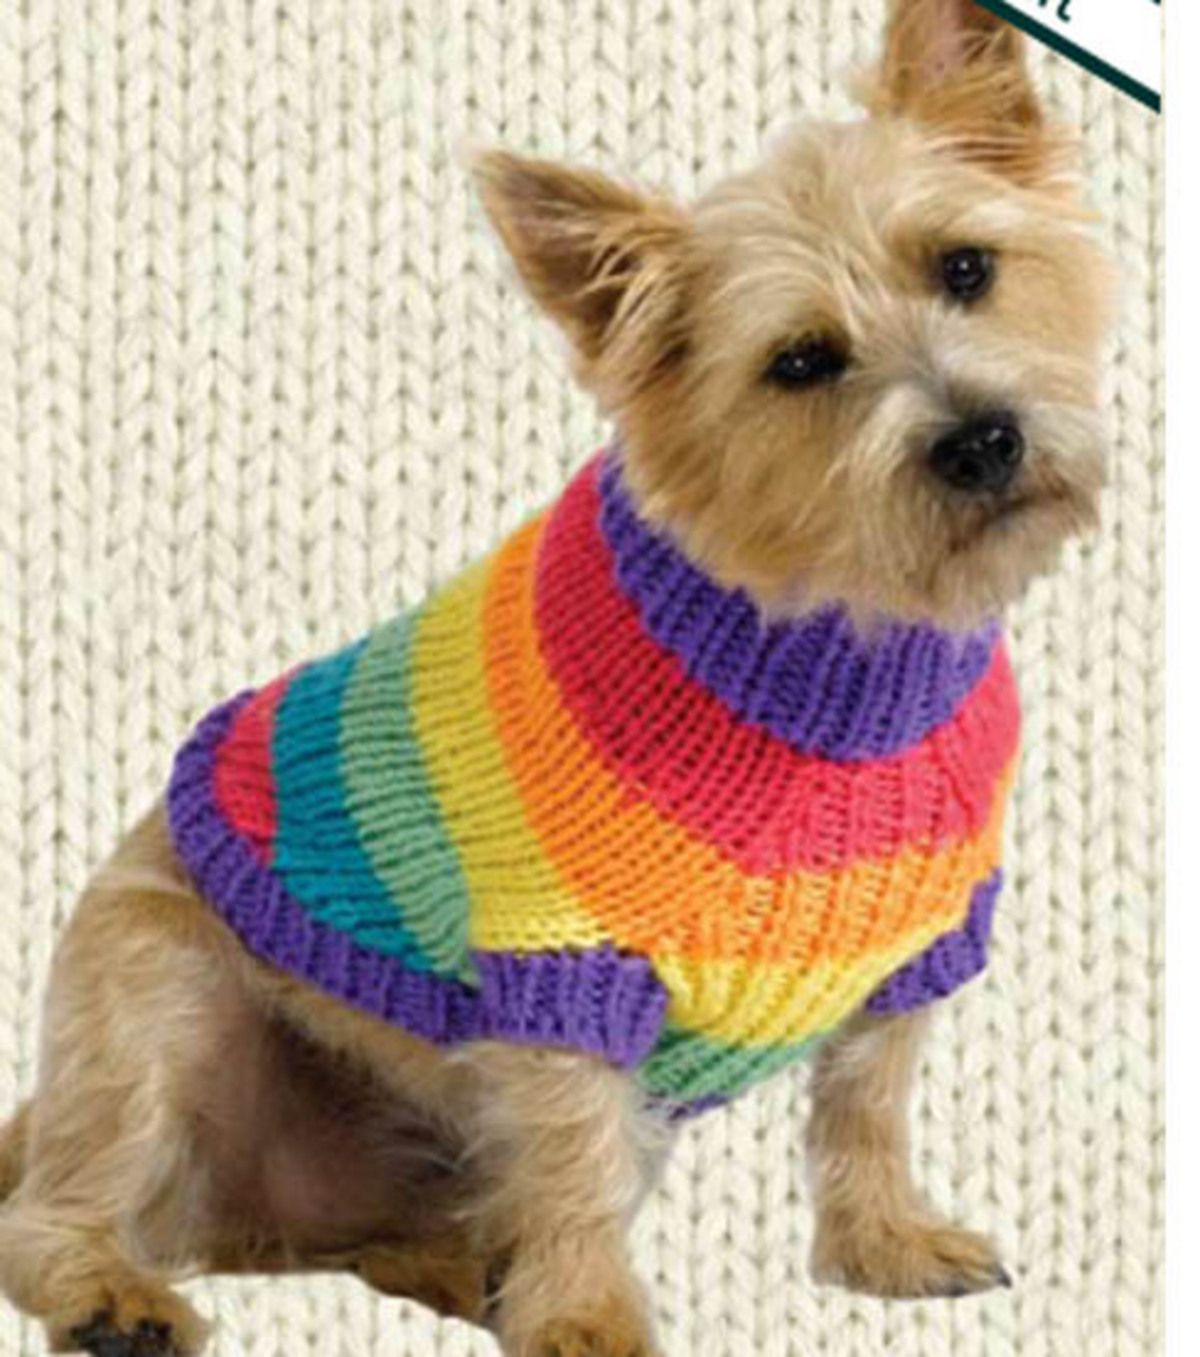 Poochs rainbow sweaterpoochs rainbow sweater pet love dog sweaters miss julias vintage knit crochet patterns free patterns dog sweater coats to knit crochet bankloansurffo Gallery